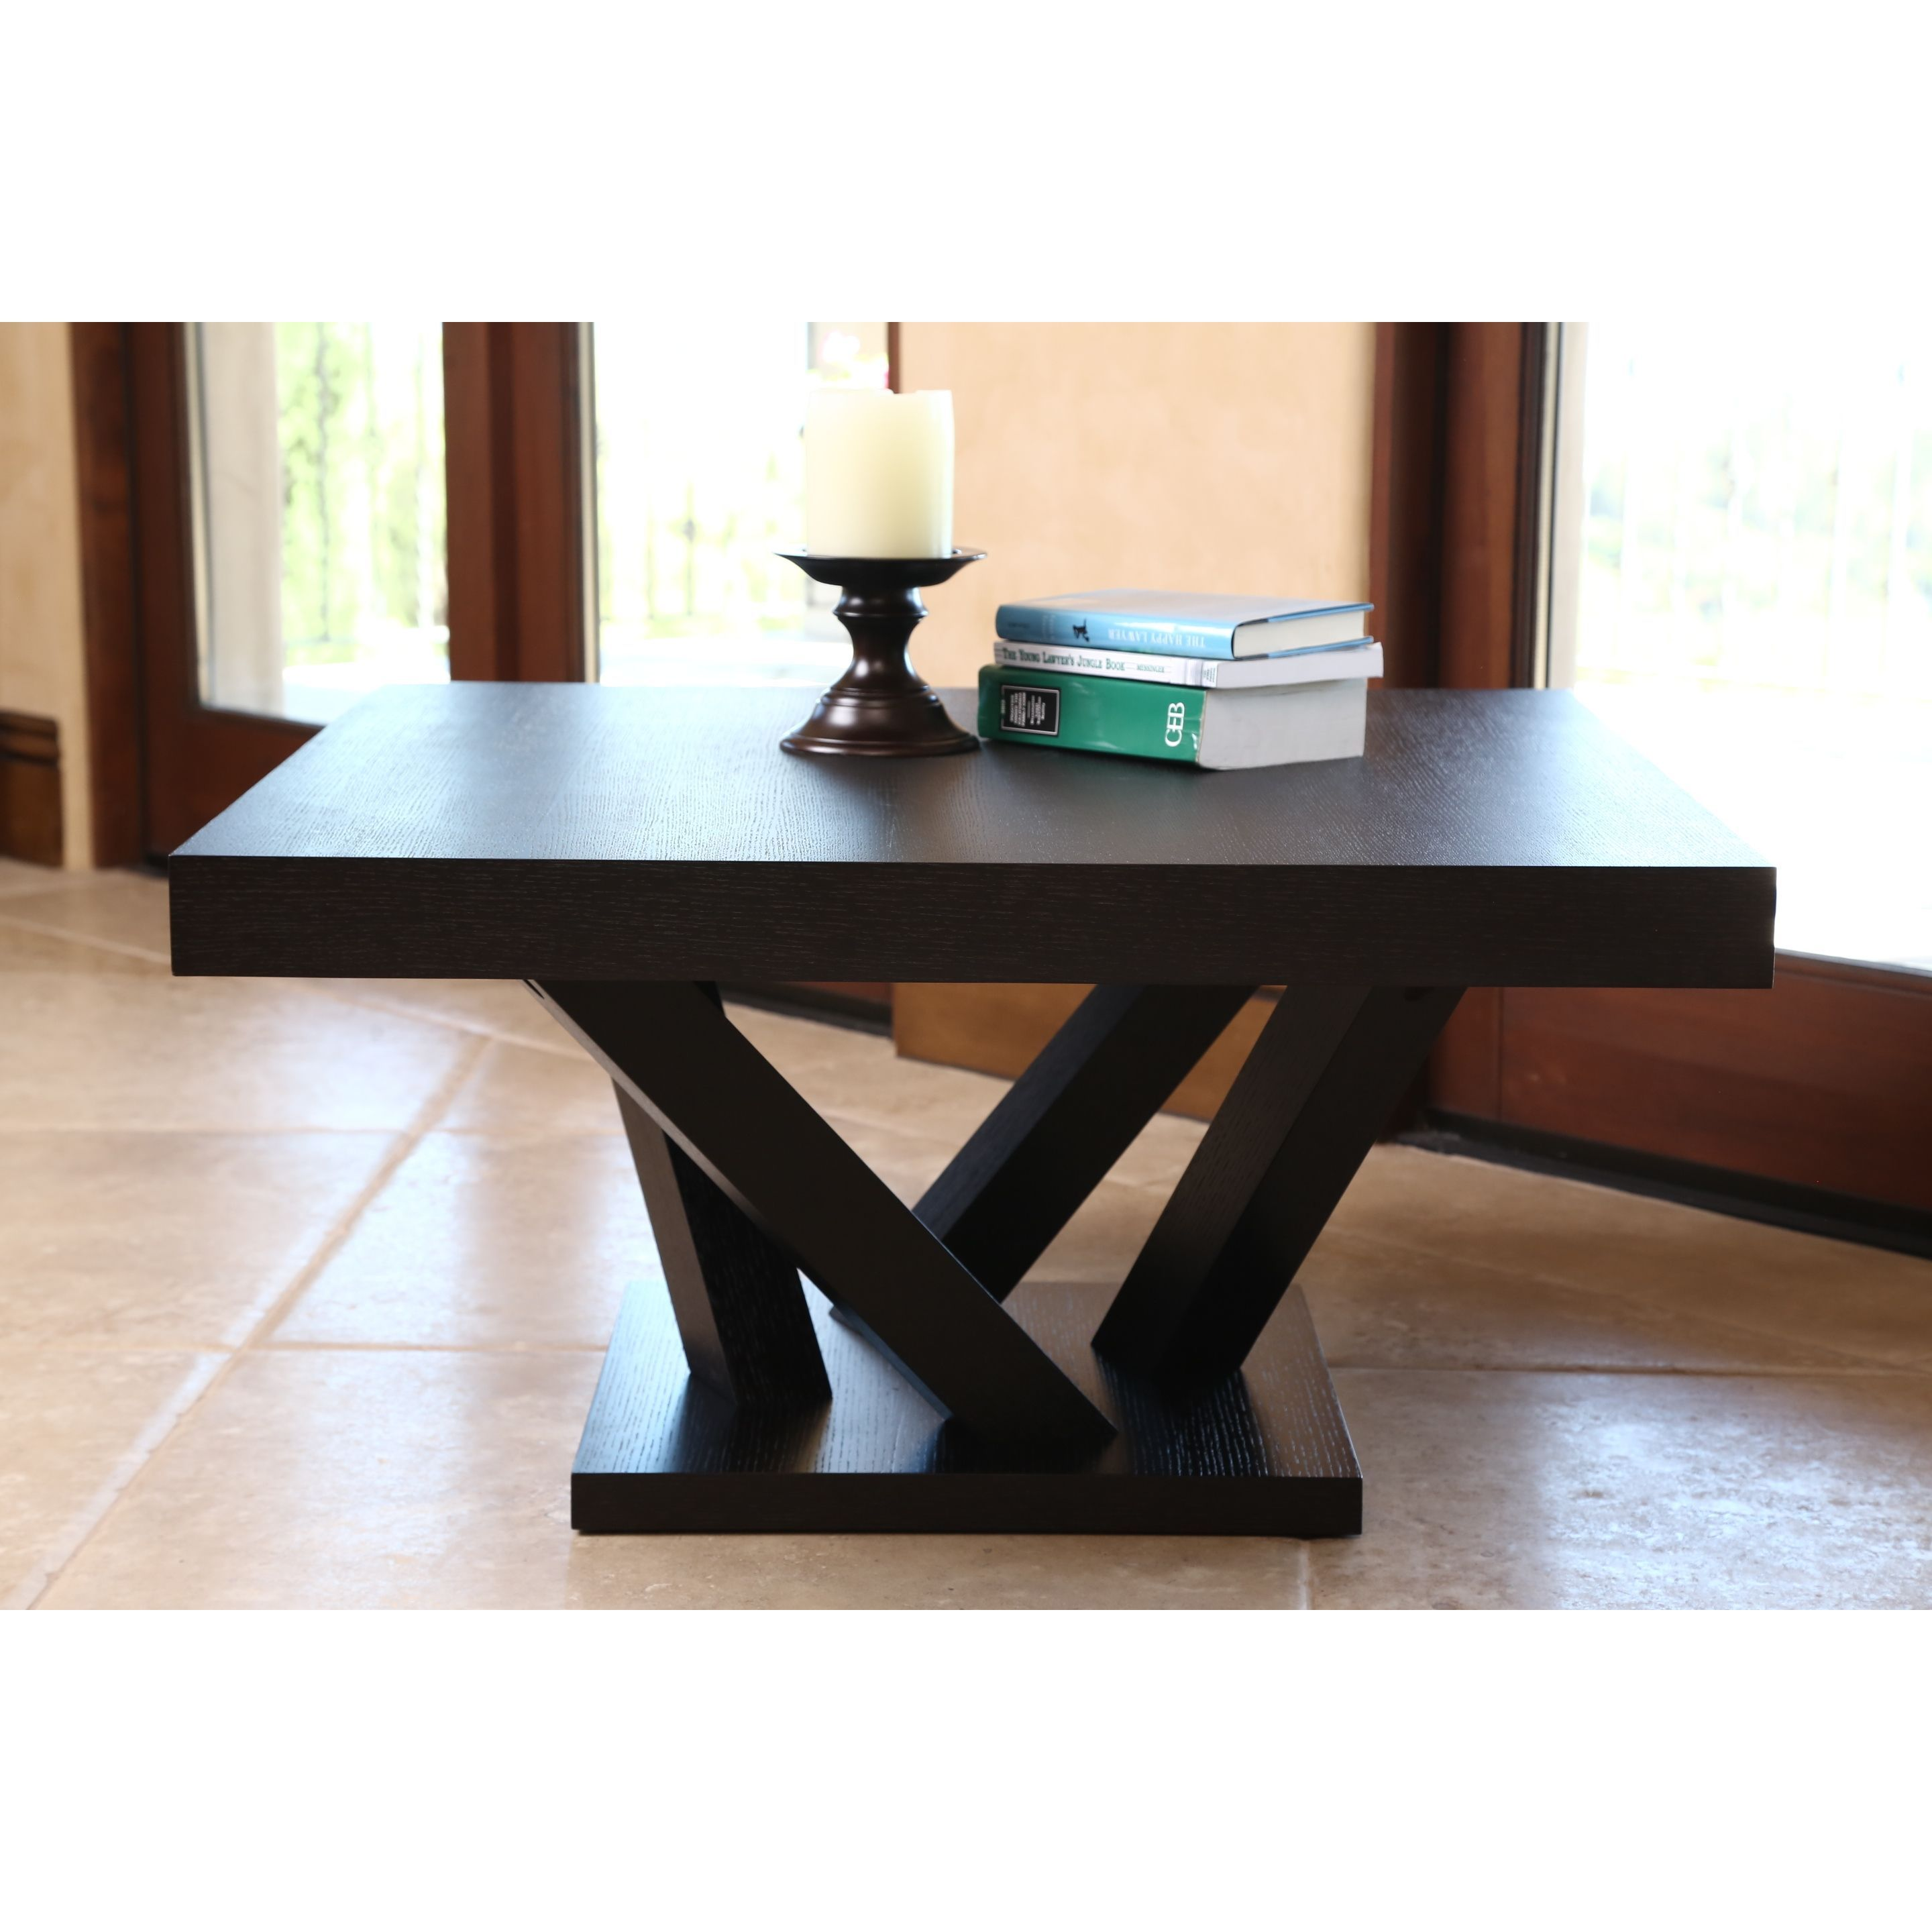 Abbyson Cosmo Espresso Wood Square Coffee Table by Abbyson